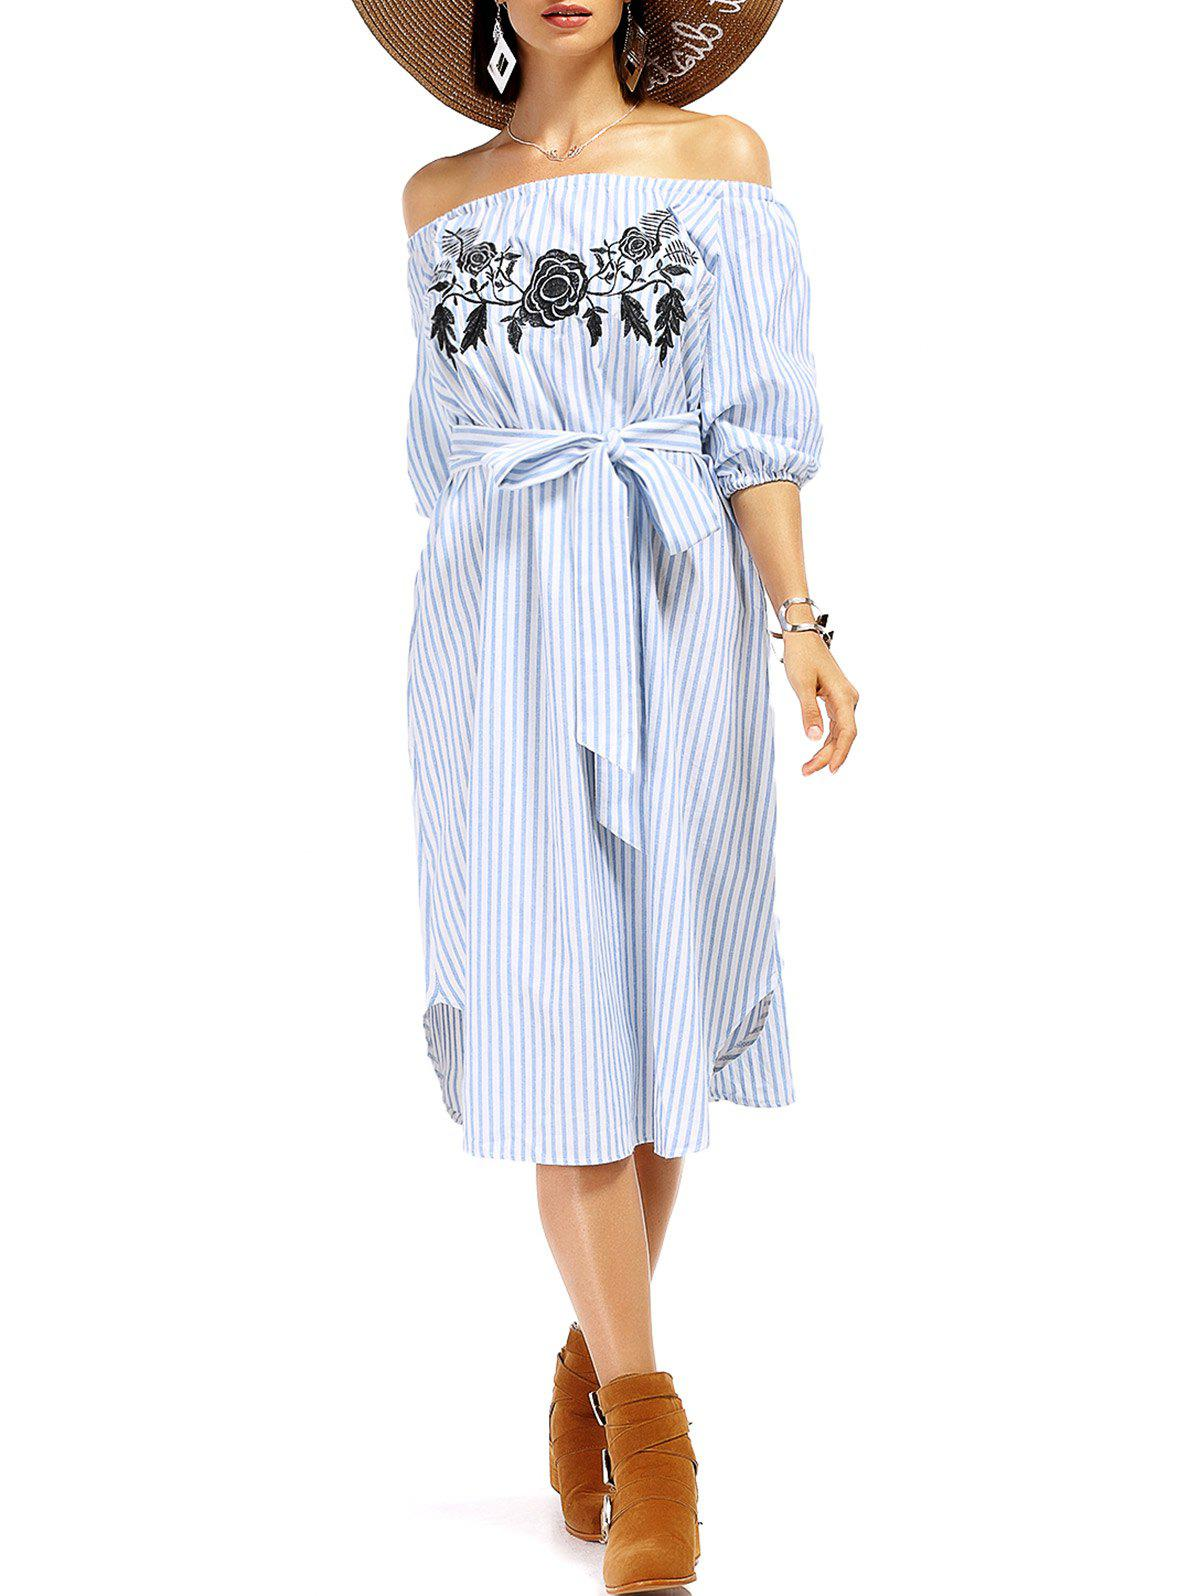 Online Attractive Off The Shoulder Striped Floral Embroidered Midi Dress For Women